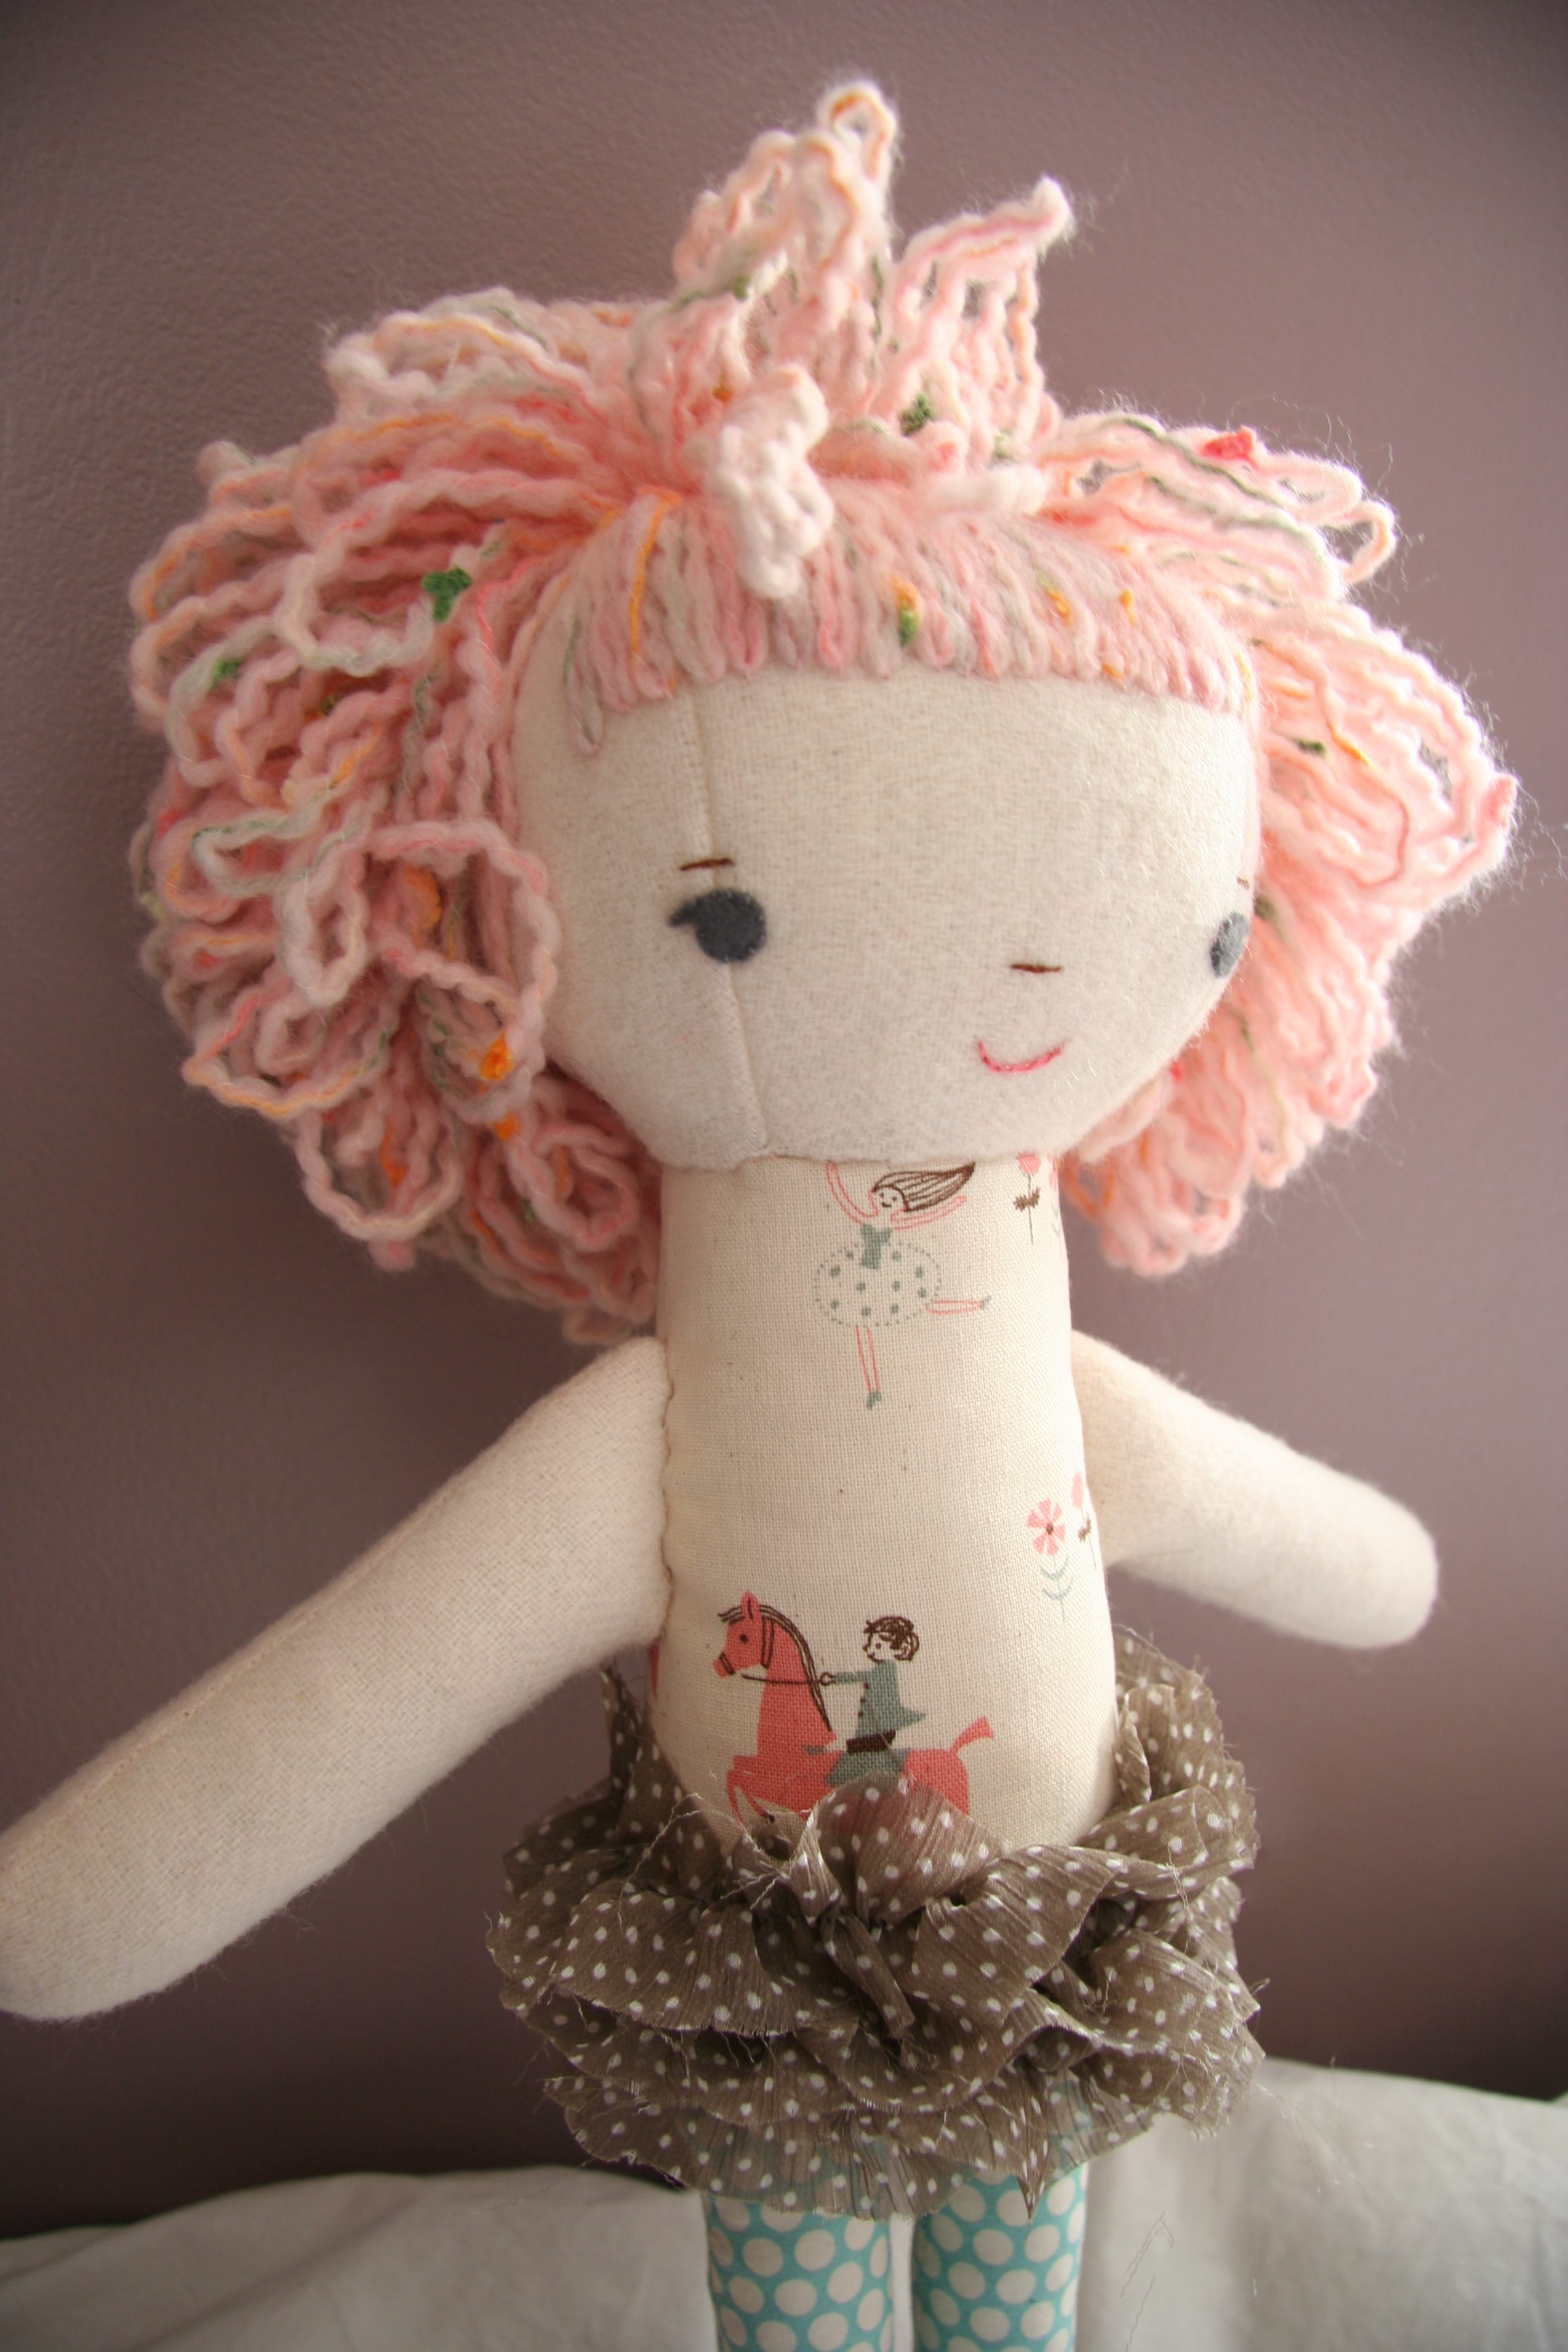 pink puffy curly haired doll